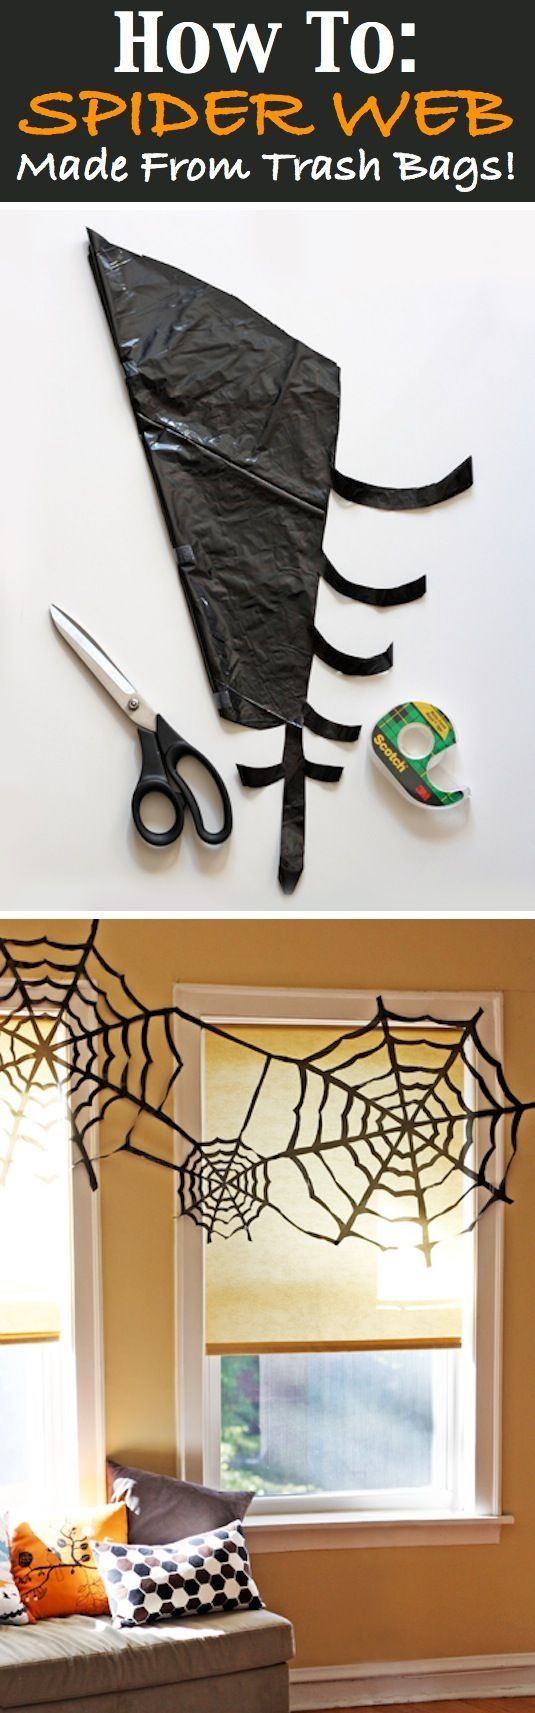 16 easy but awesome homemade halloween decorations by echkbet - Cheap Halloween Decor Ideas